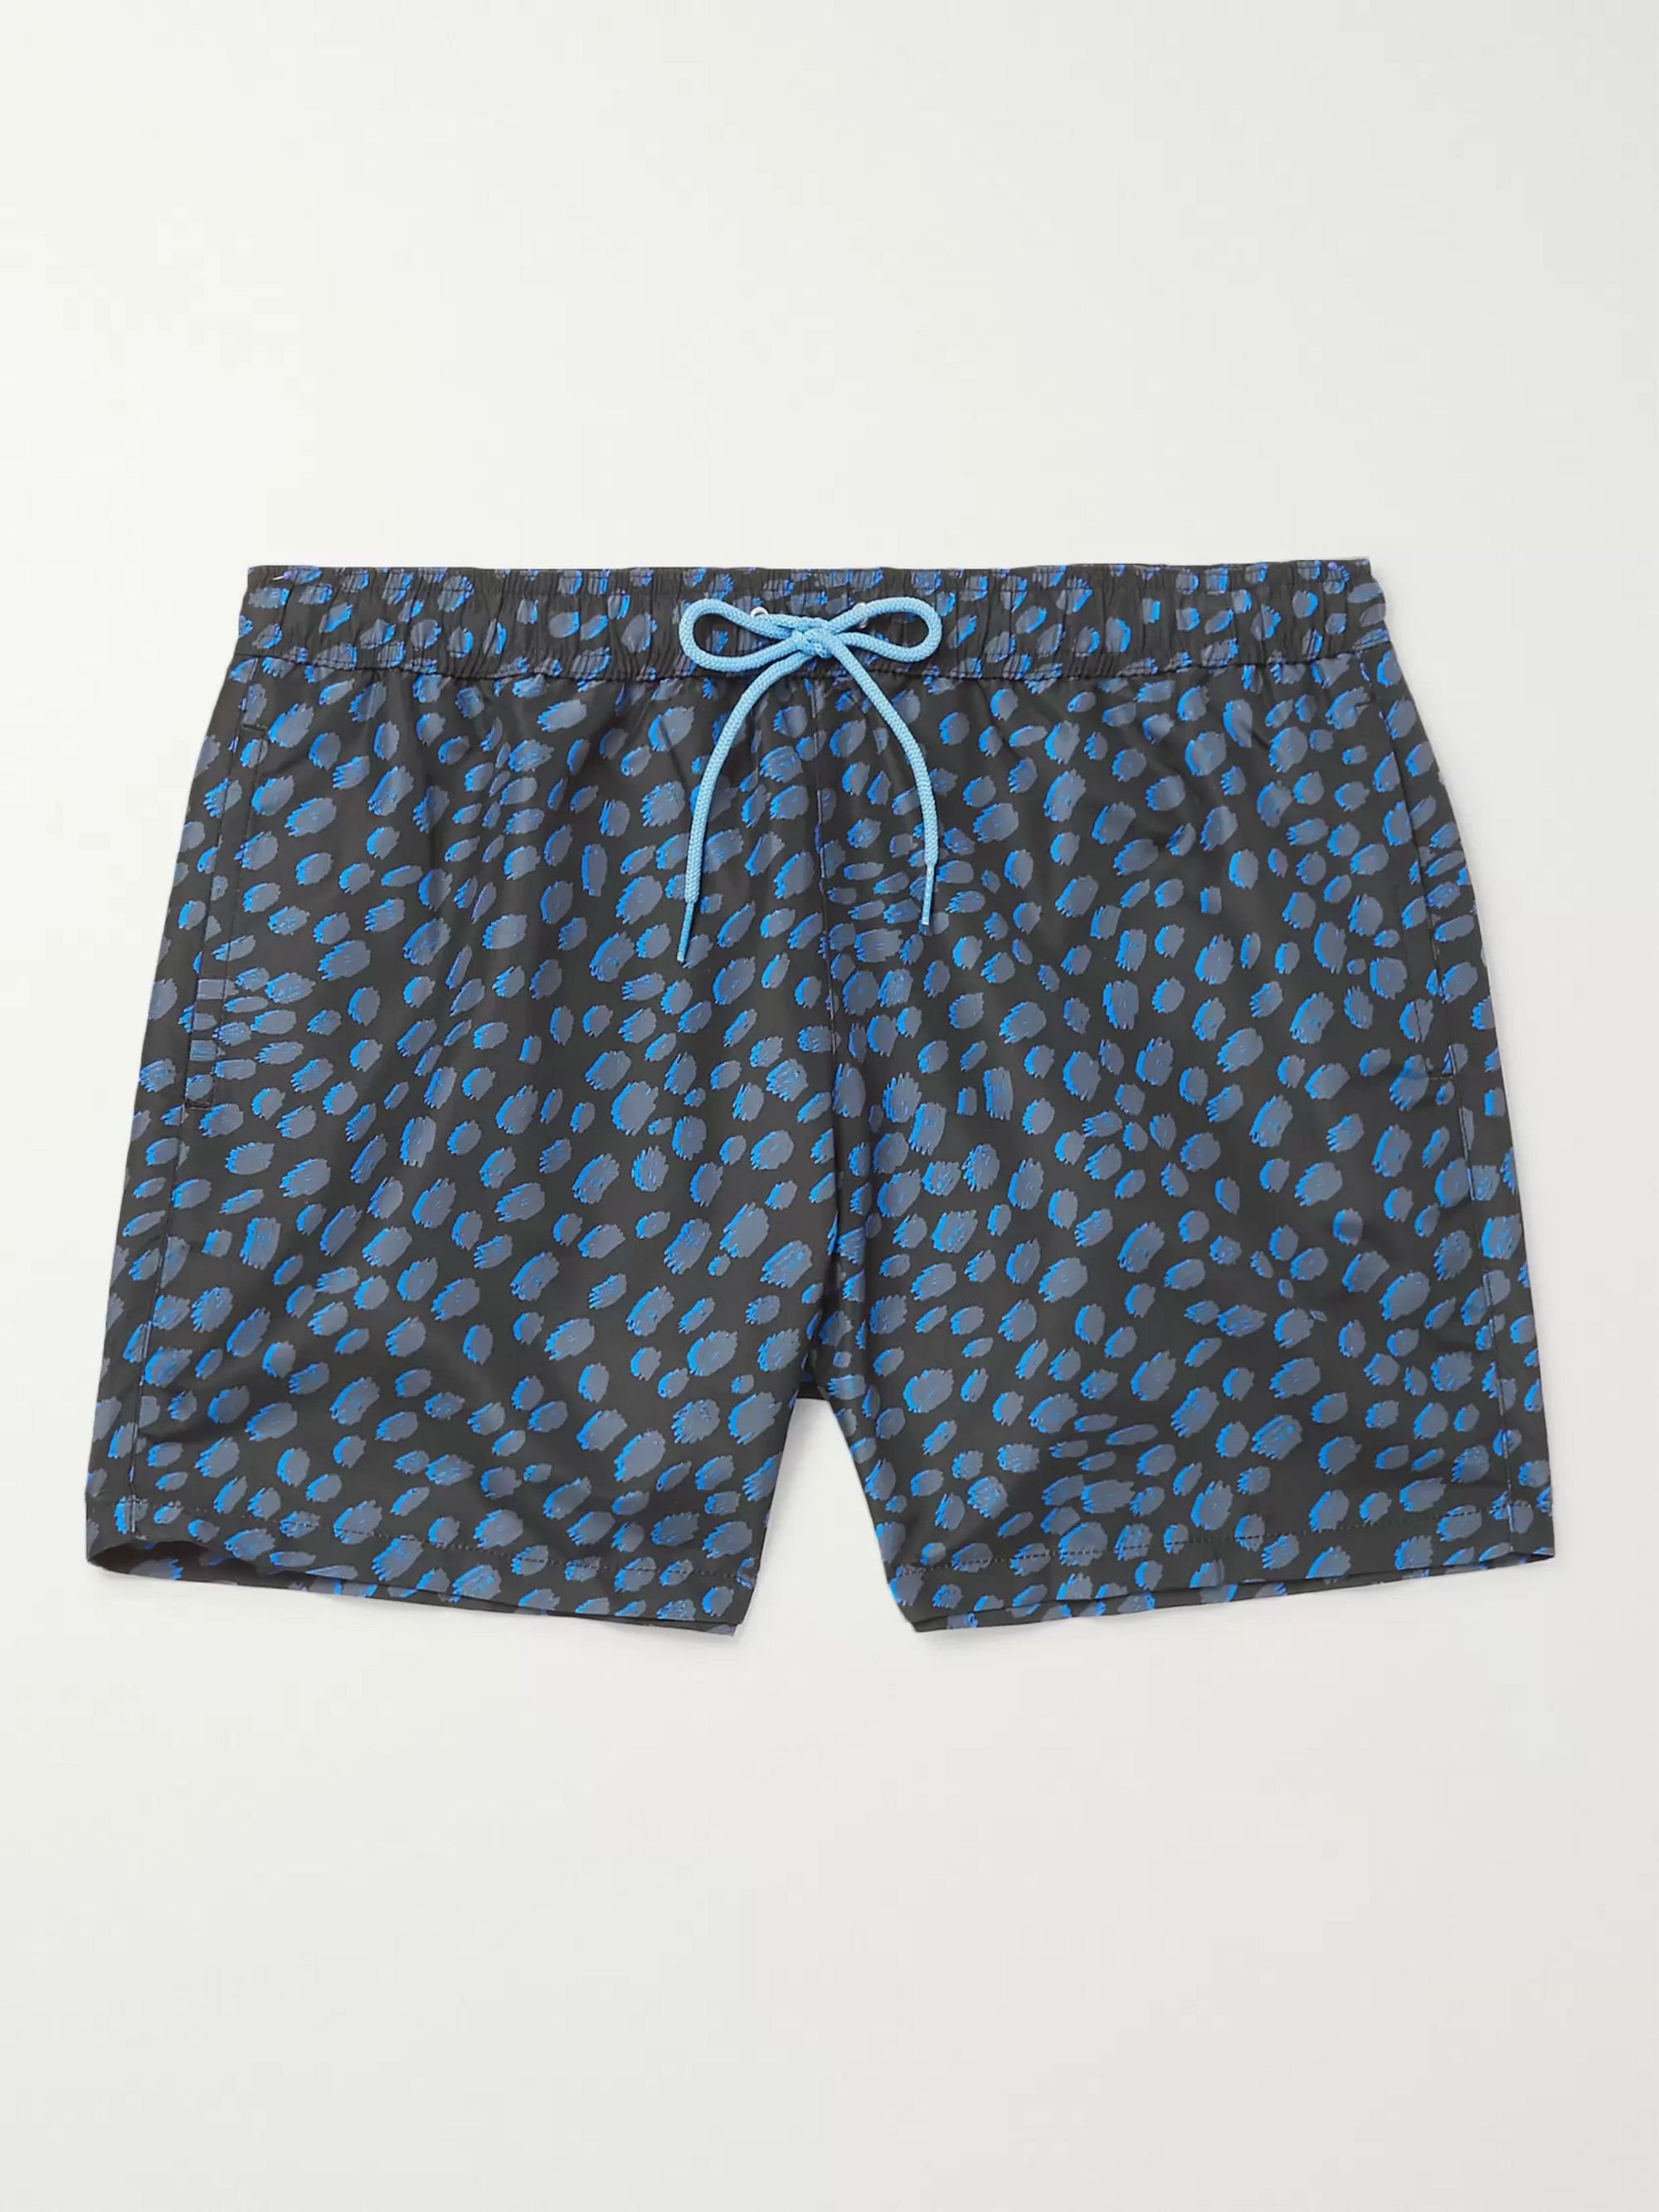 Paul Smith Mid-Length Leopard-Print Shell Swim Shorts